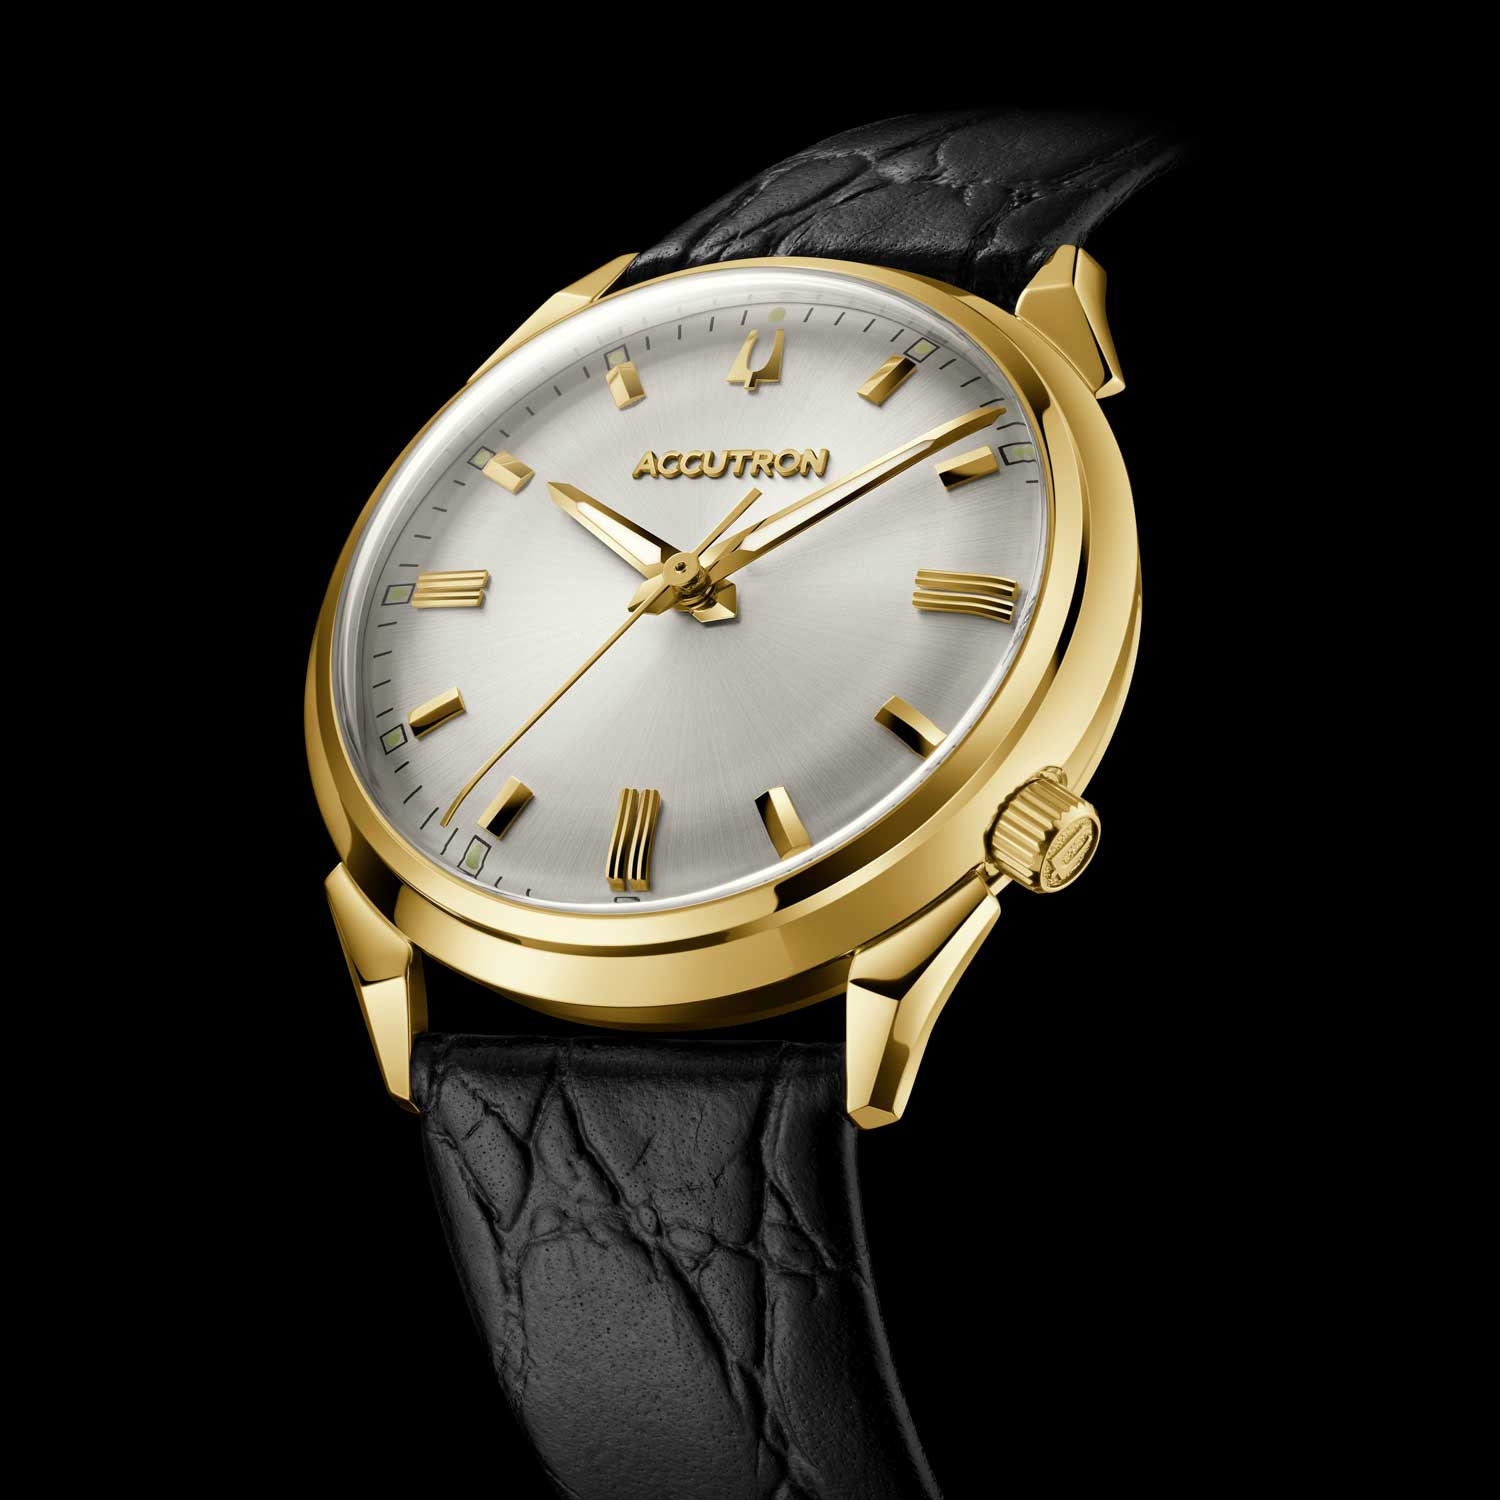 The new 412 is a 34mm gold-tone stainless steel round case watch with the same unique bull horn lugs and crown placement at 4 o'clock as the Accutron from the 1960s.